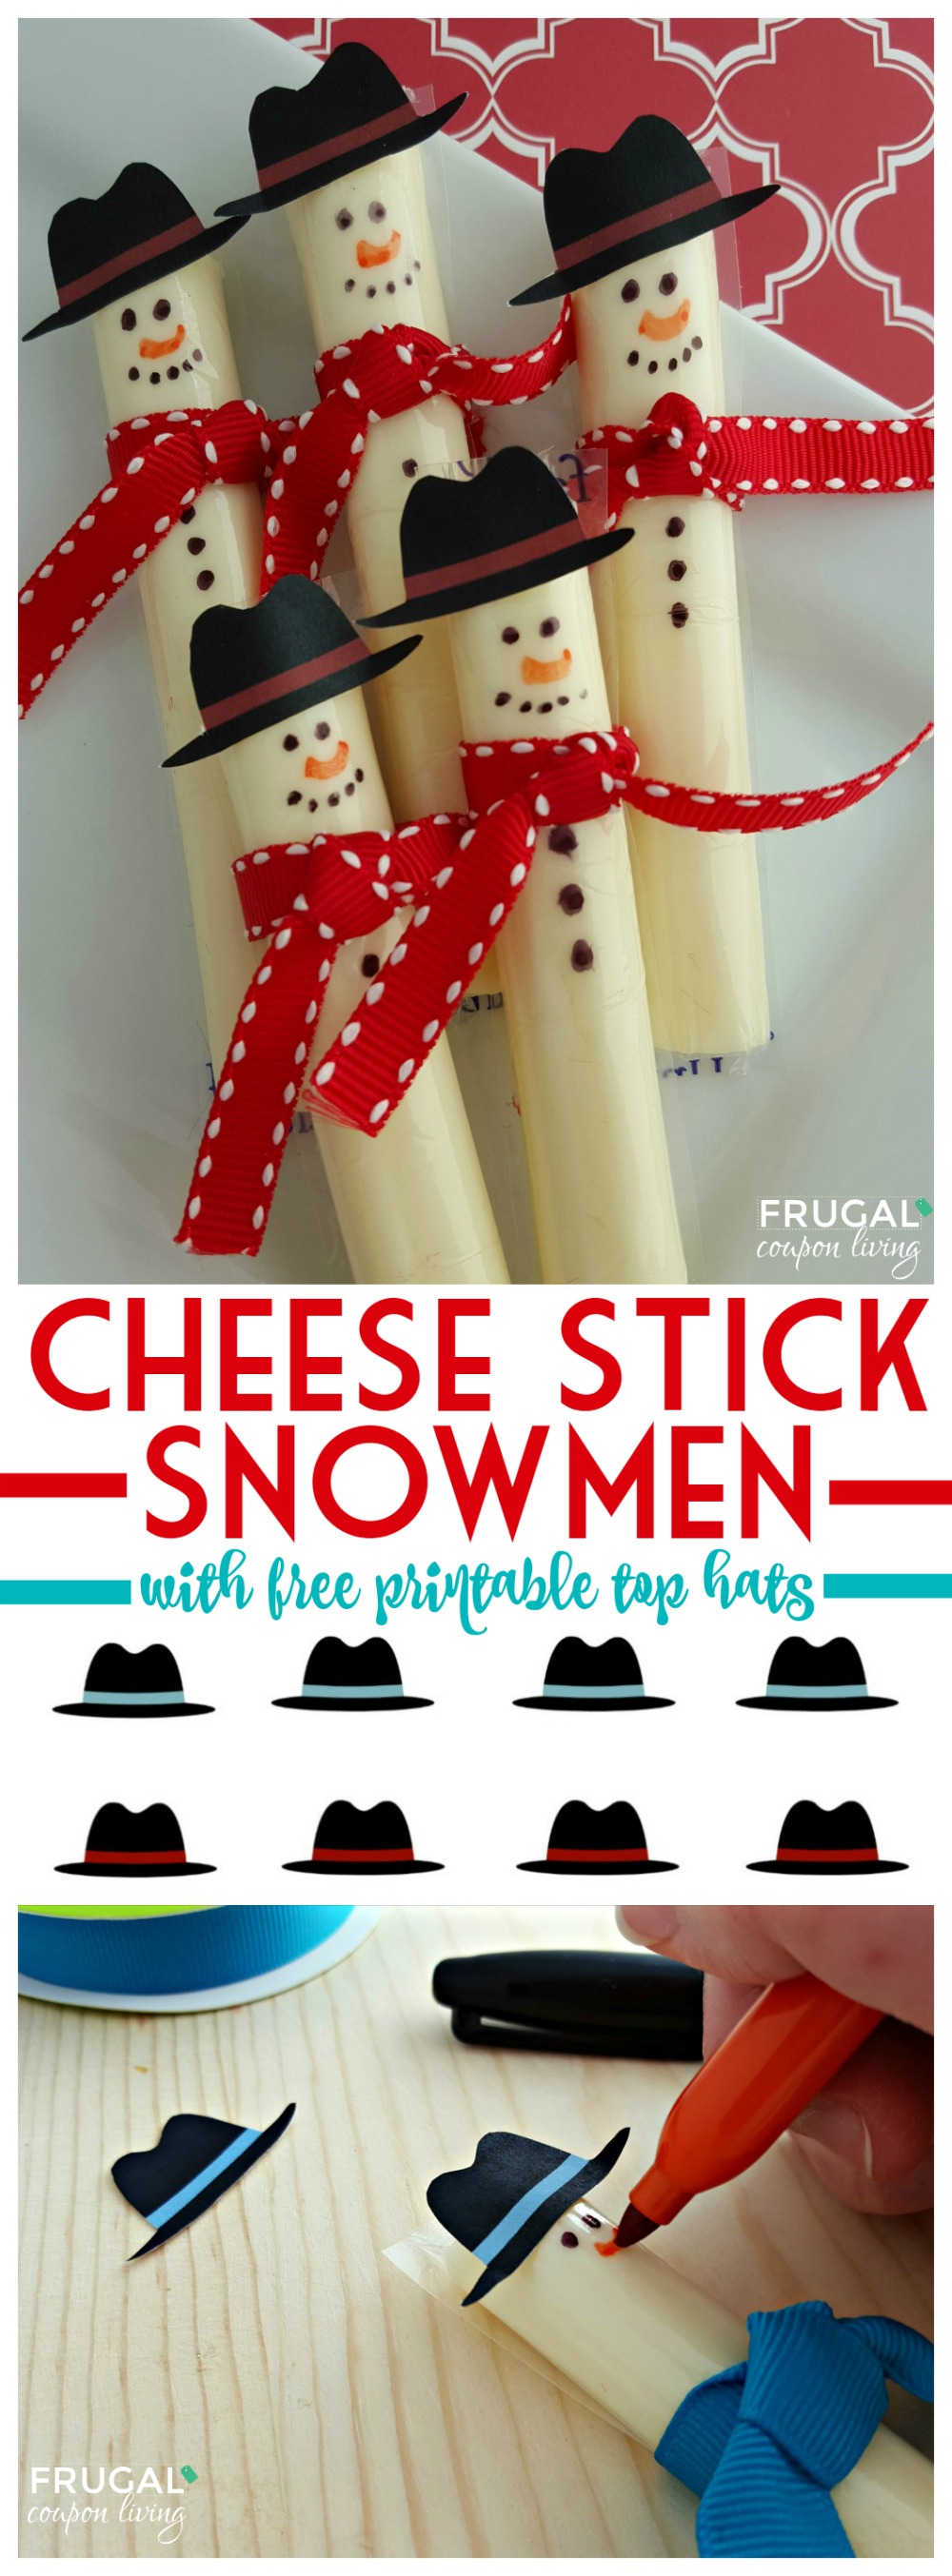 cheese-stick-snowmen-with-printable-top-hats-frugal-coupon-living